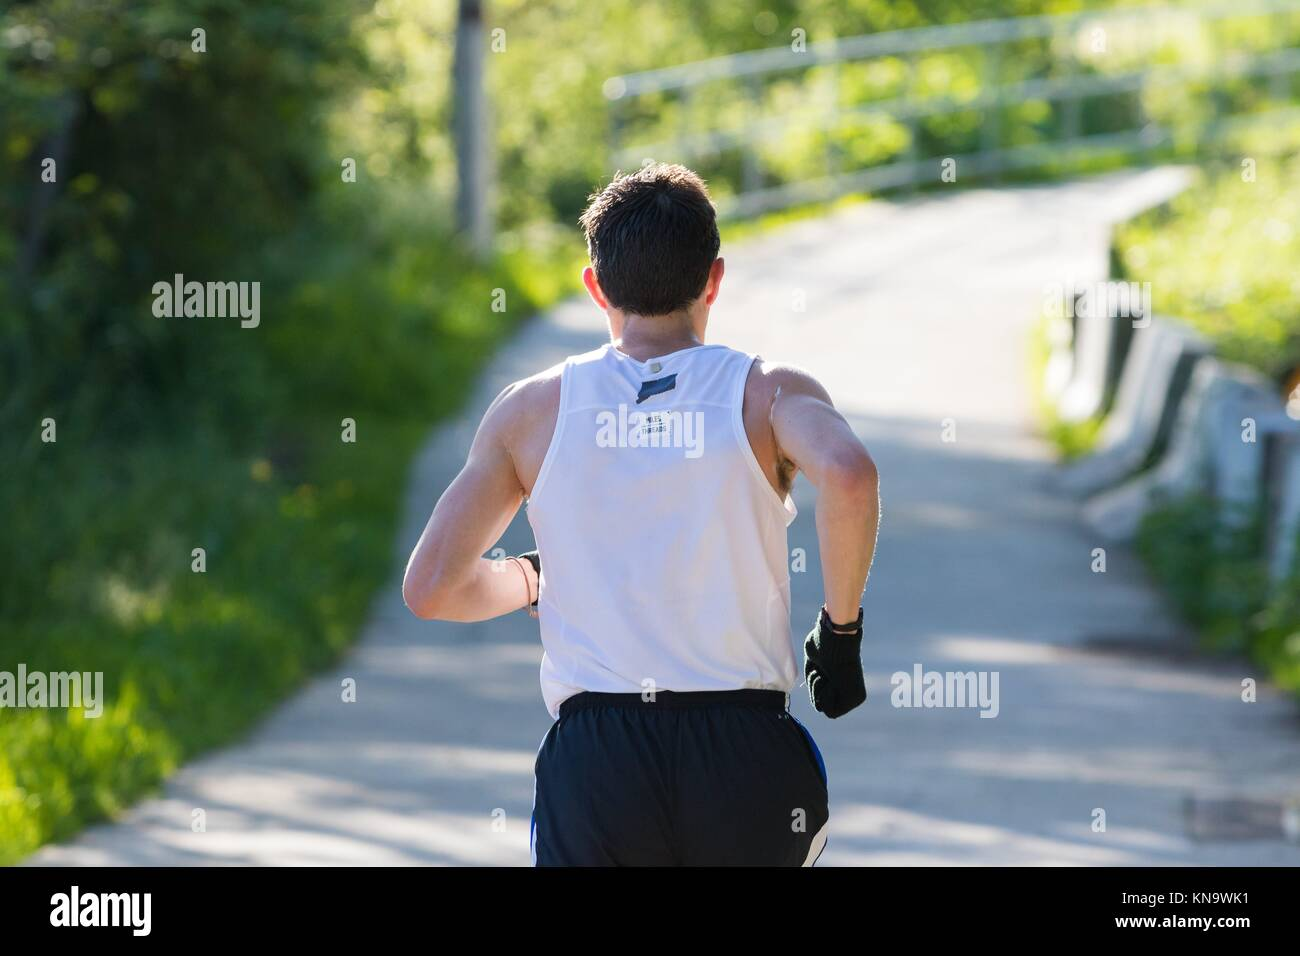 EUGENE, OR - MAY 7, 2017: Runner heads down the river path at mile 10 of the 2017 Eugene Marathon race held on the - Stock Image